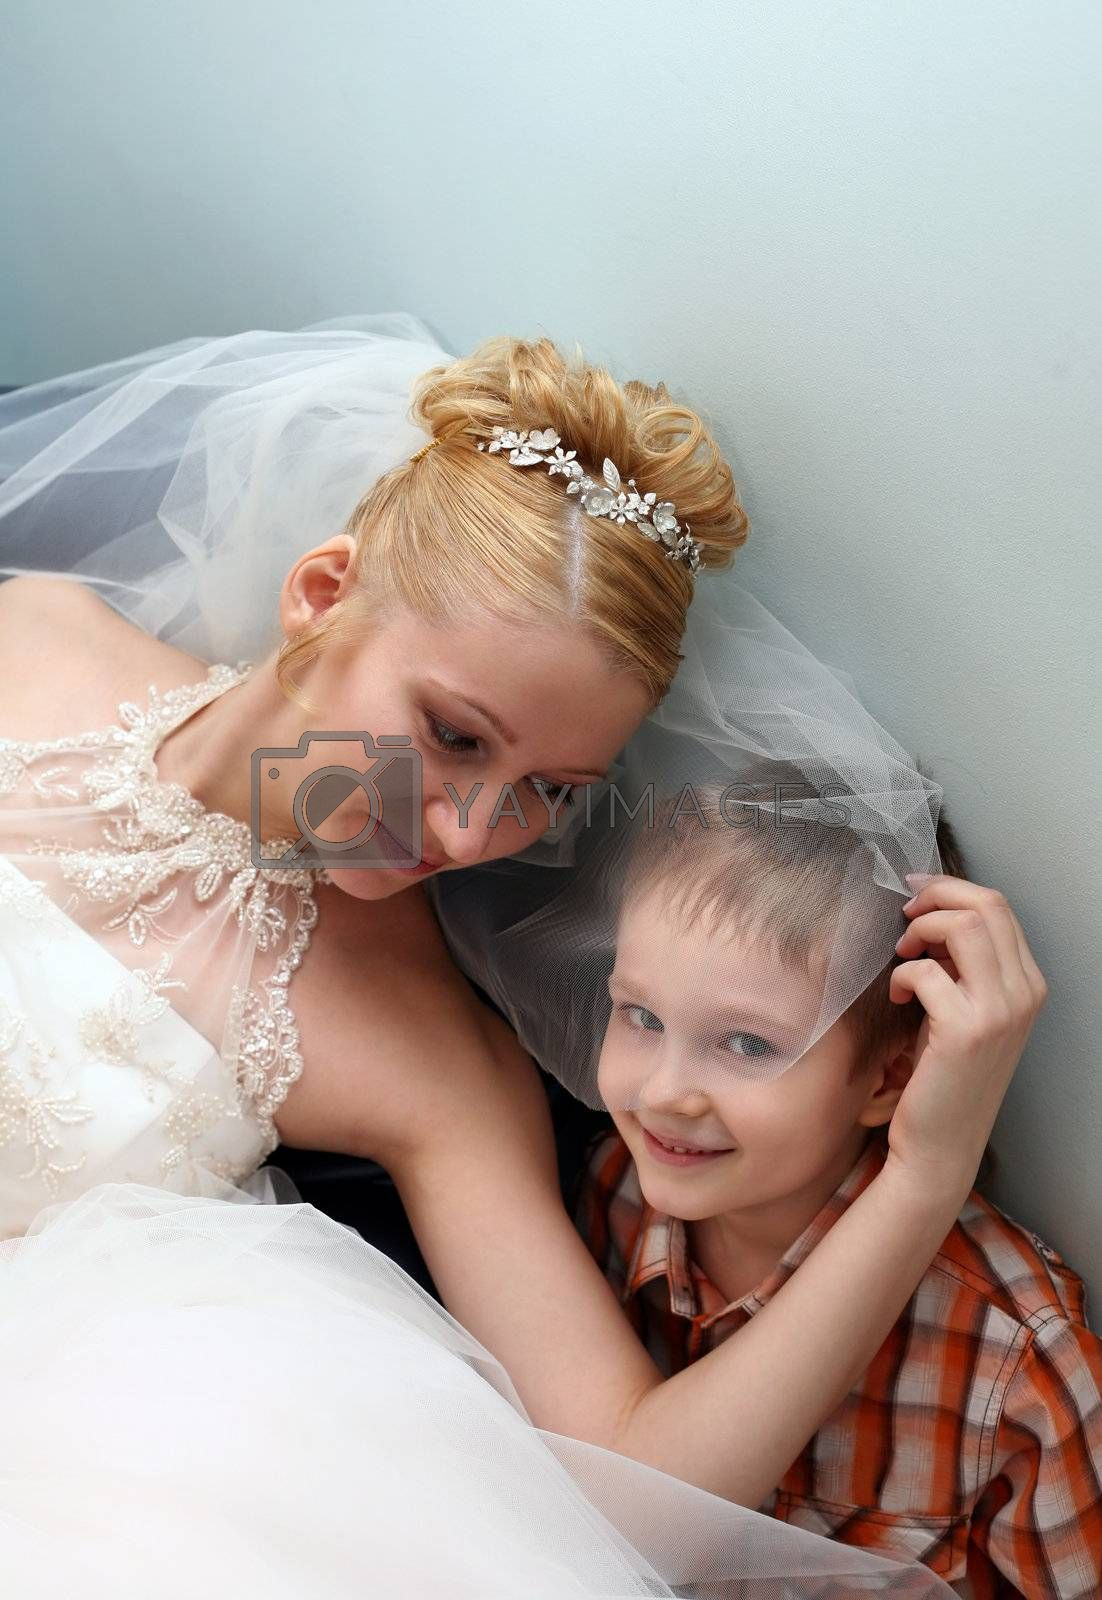 The beautiful bride with the little boy